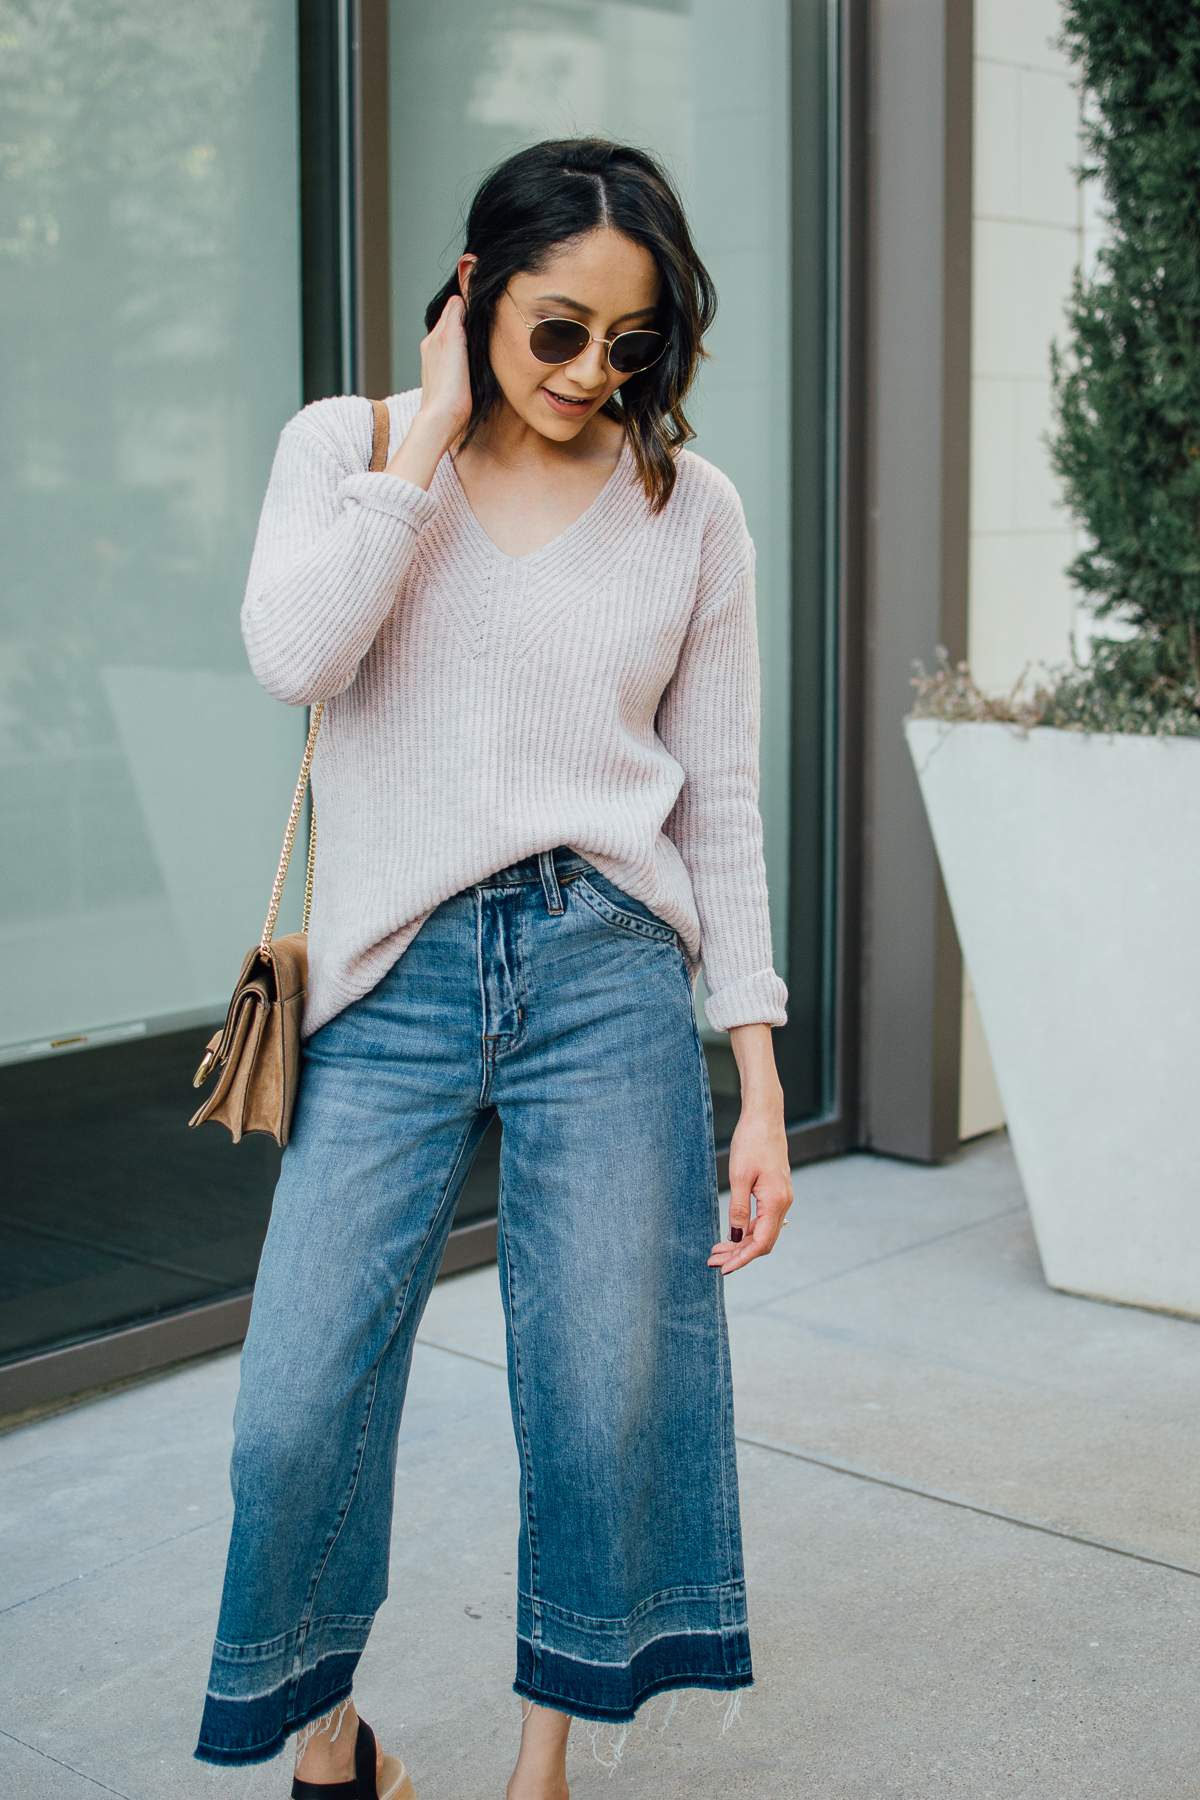 Daily craving wearing wide leg denim with undone hems and a blush cashmere sweater